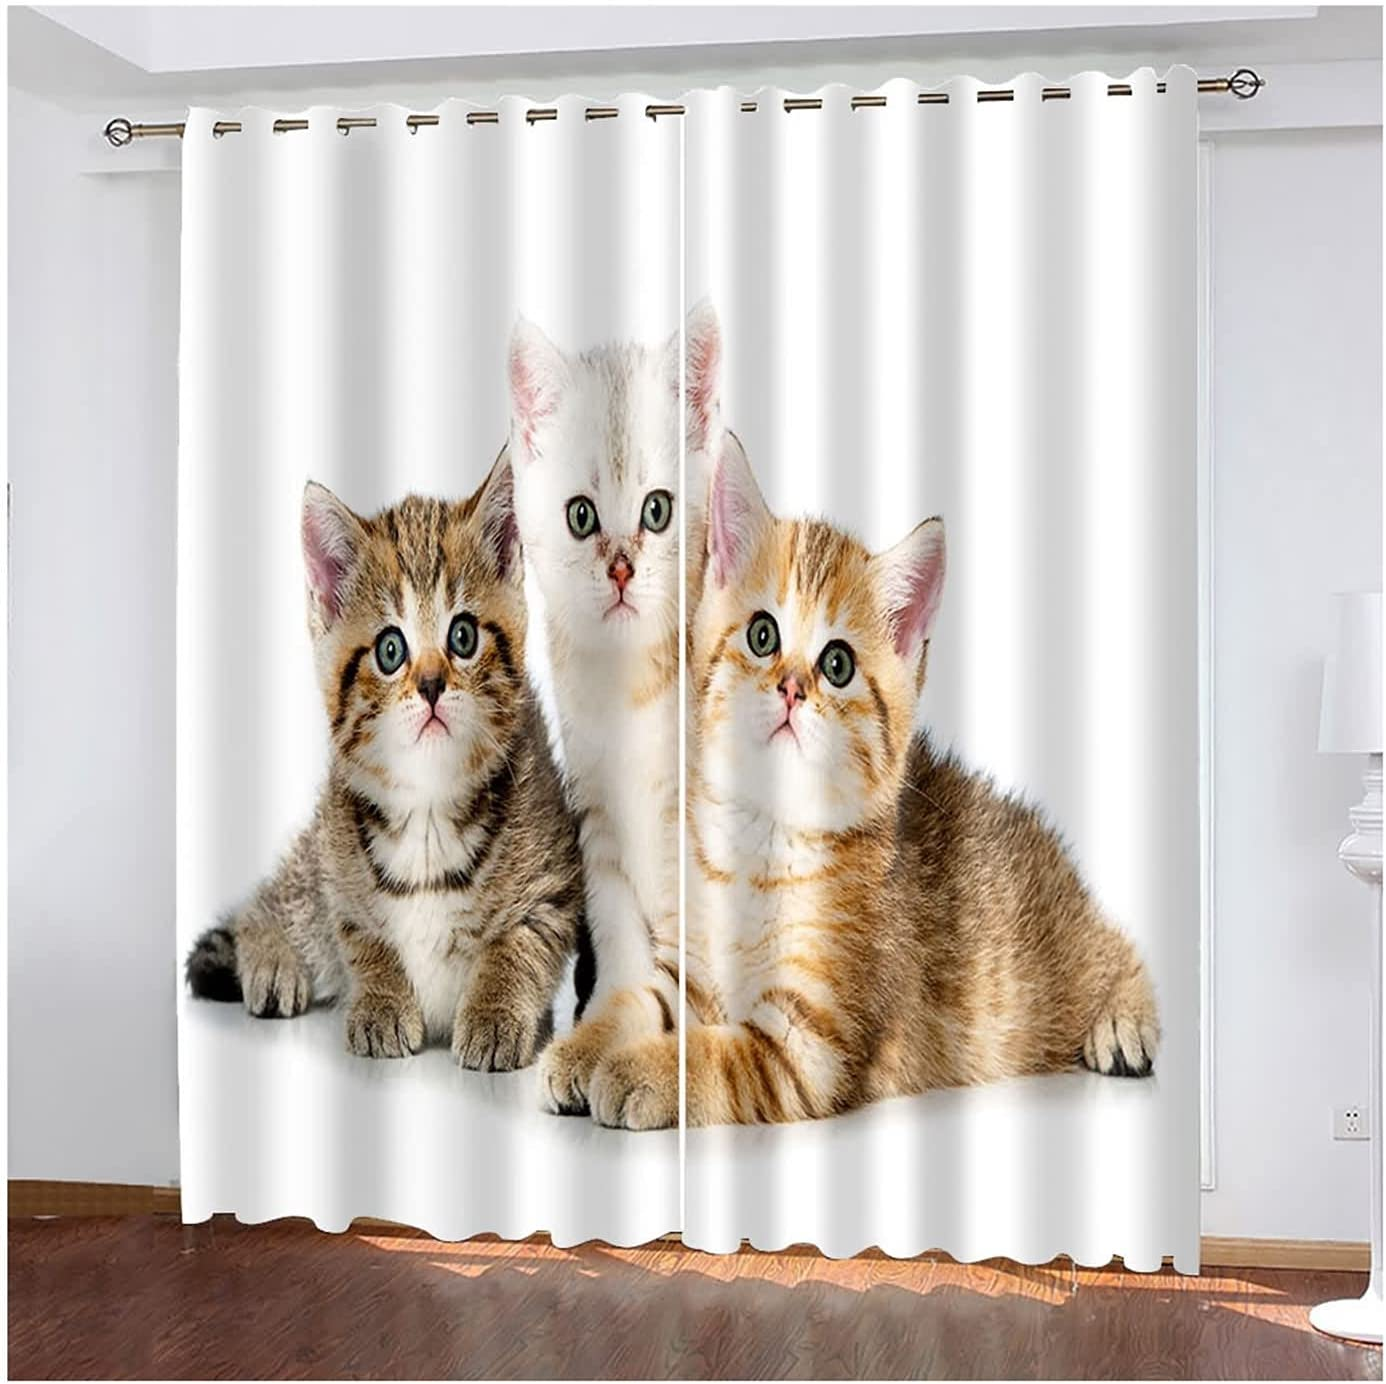 Blackout Drapes 2 Oakland Mall Panel Darkening Bedroom Super-cheap for Cat Cute Curtains